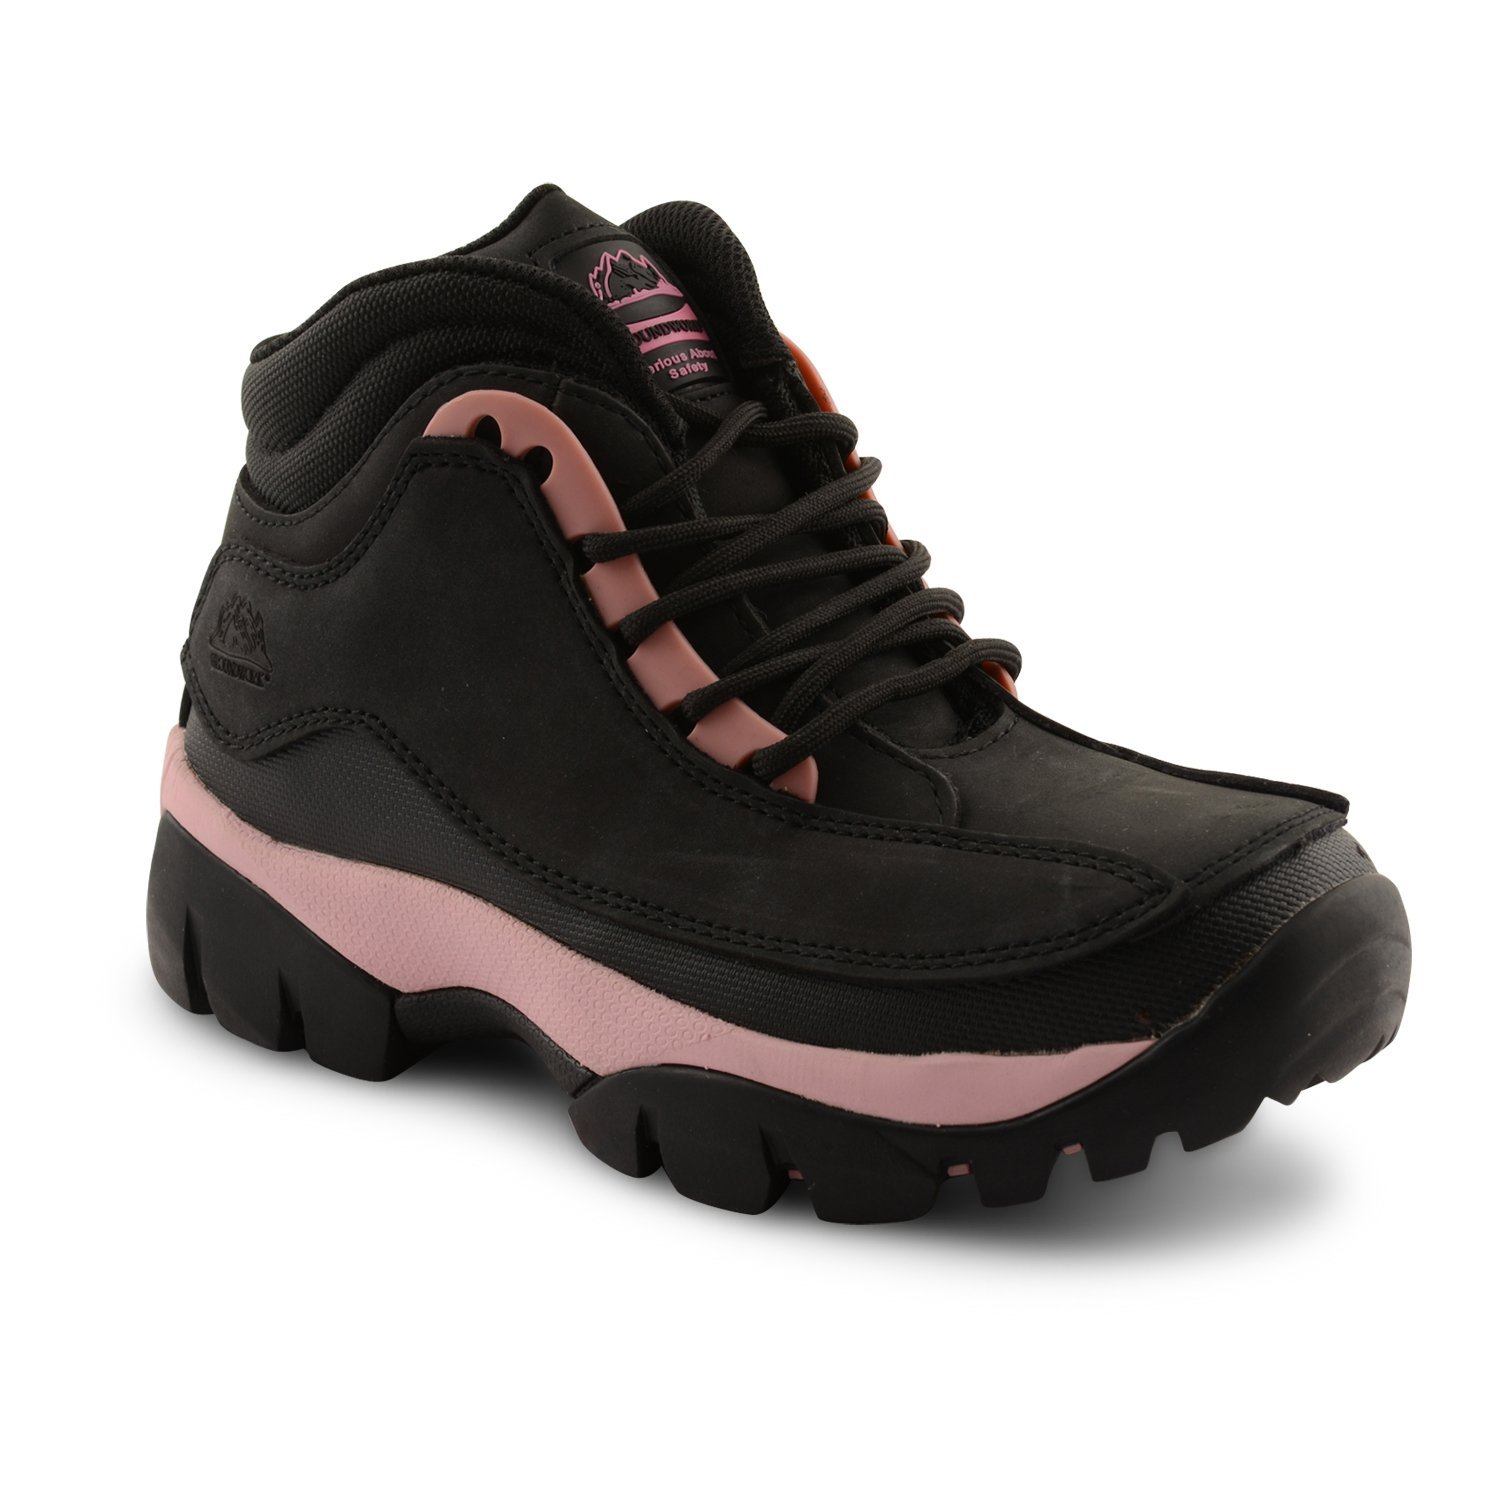 1b28ee7273f Groundwork Ladies Steel Toe Cap Lace Up Safety Boots Womens Oil Slip  Resistant Walking Protection Shoes